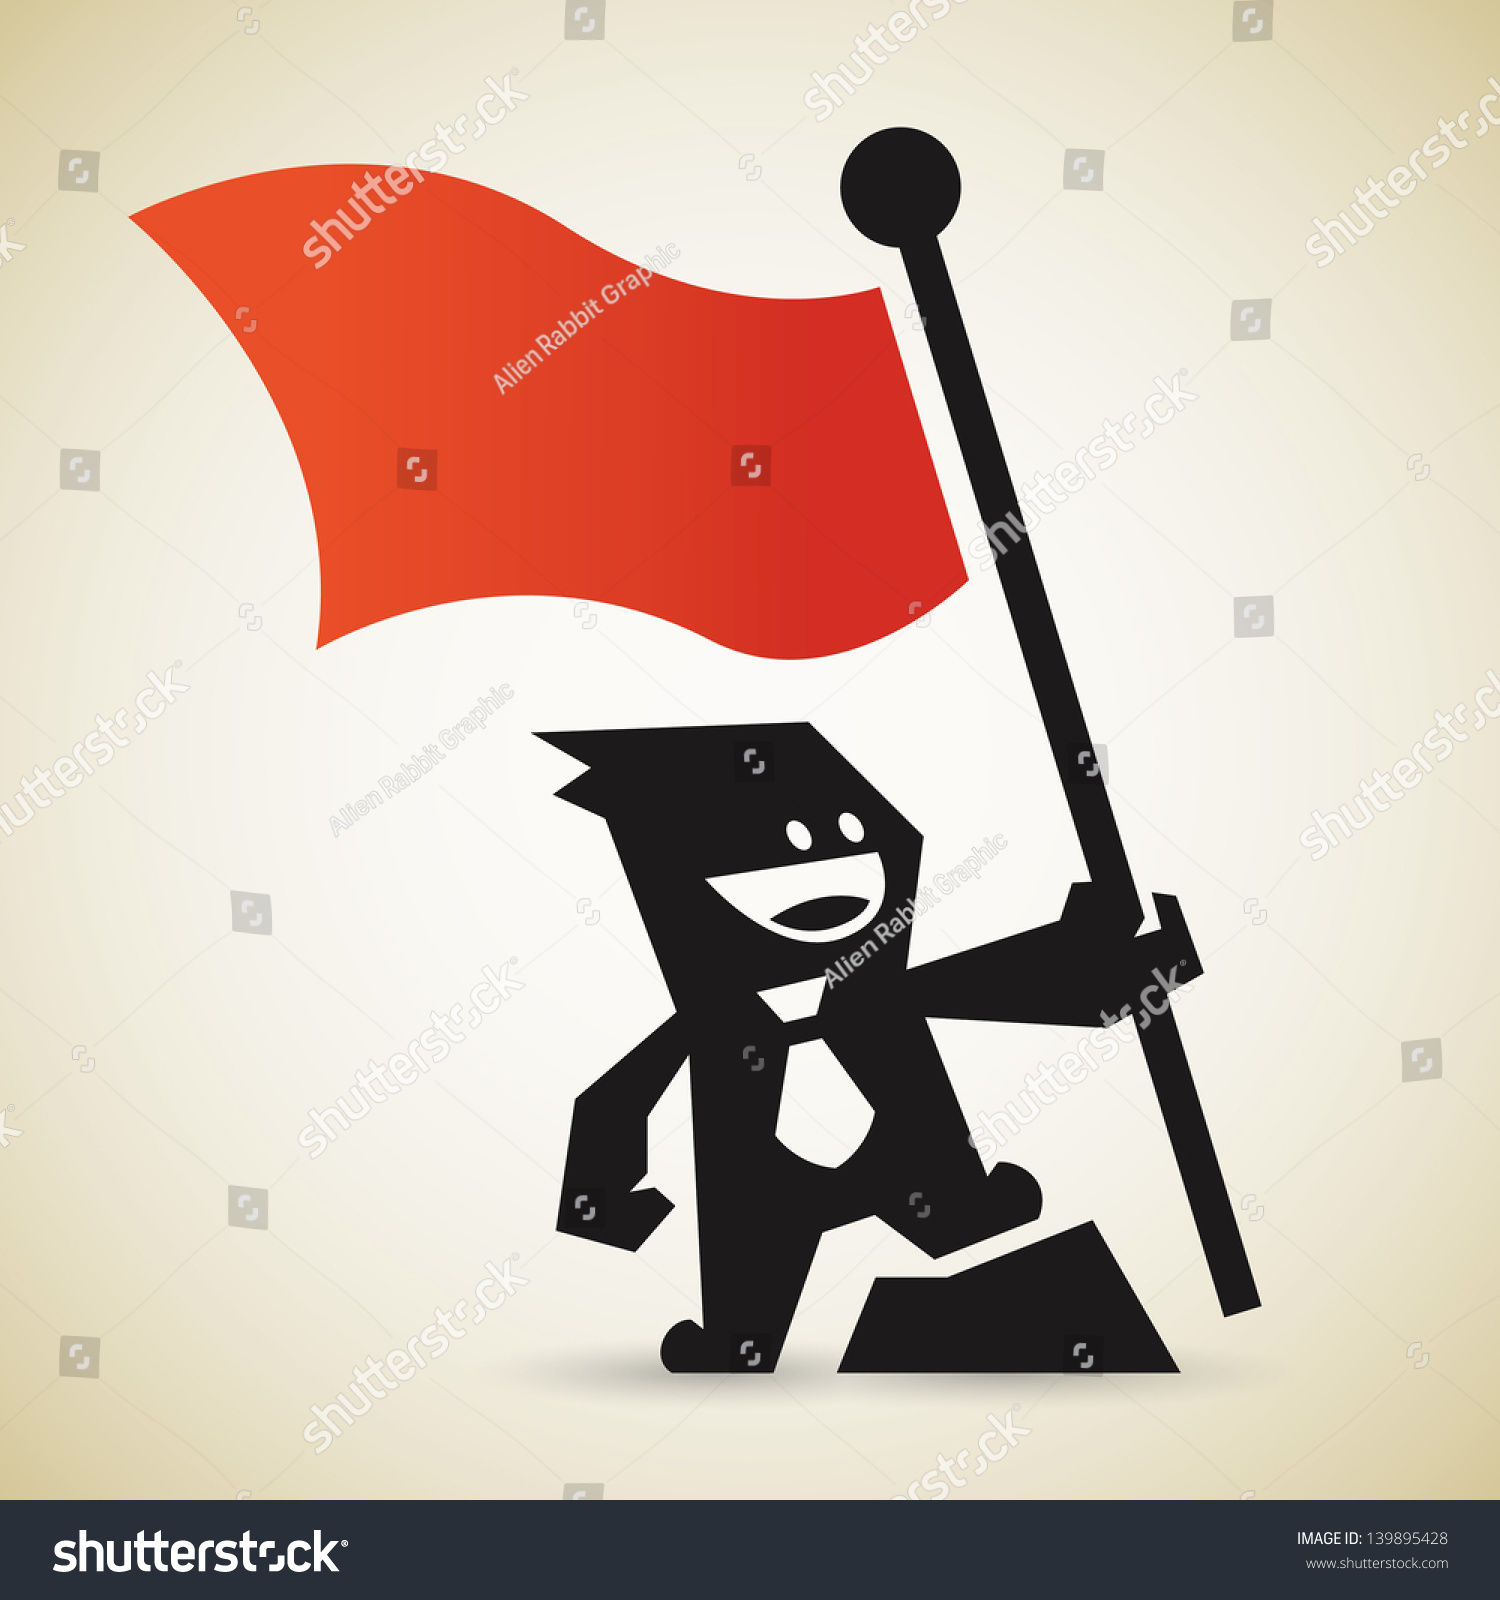 Capture the flag stock vector illustration 139895428 for Capture the flag